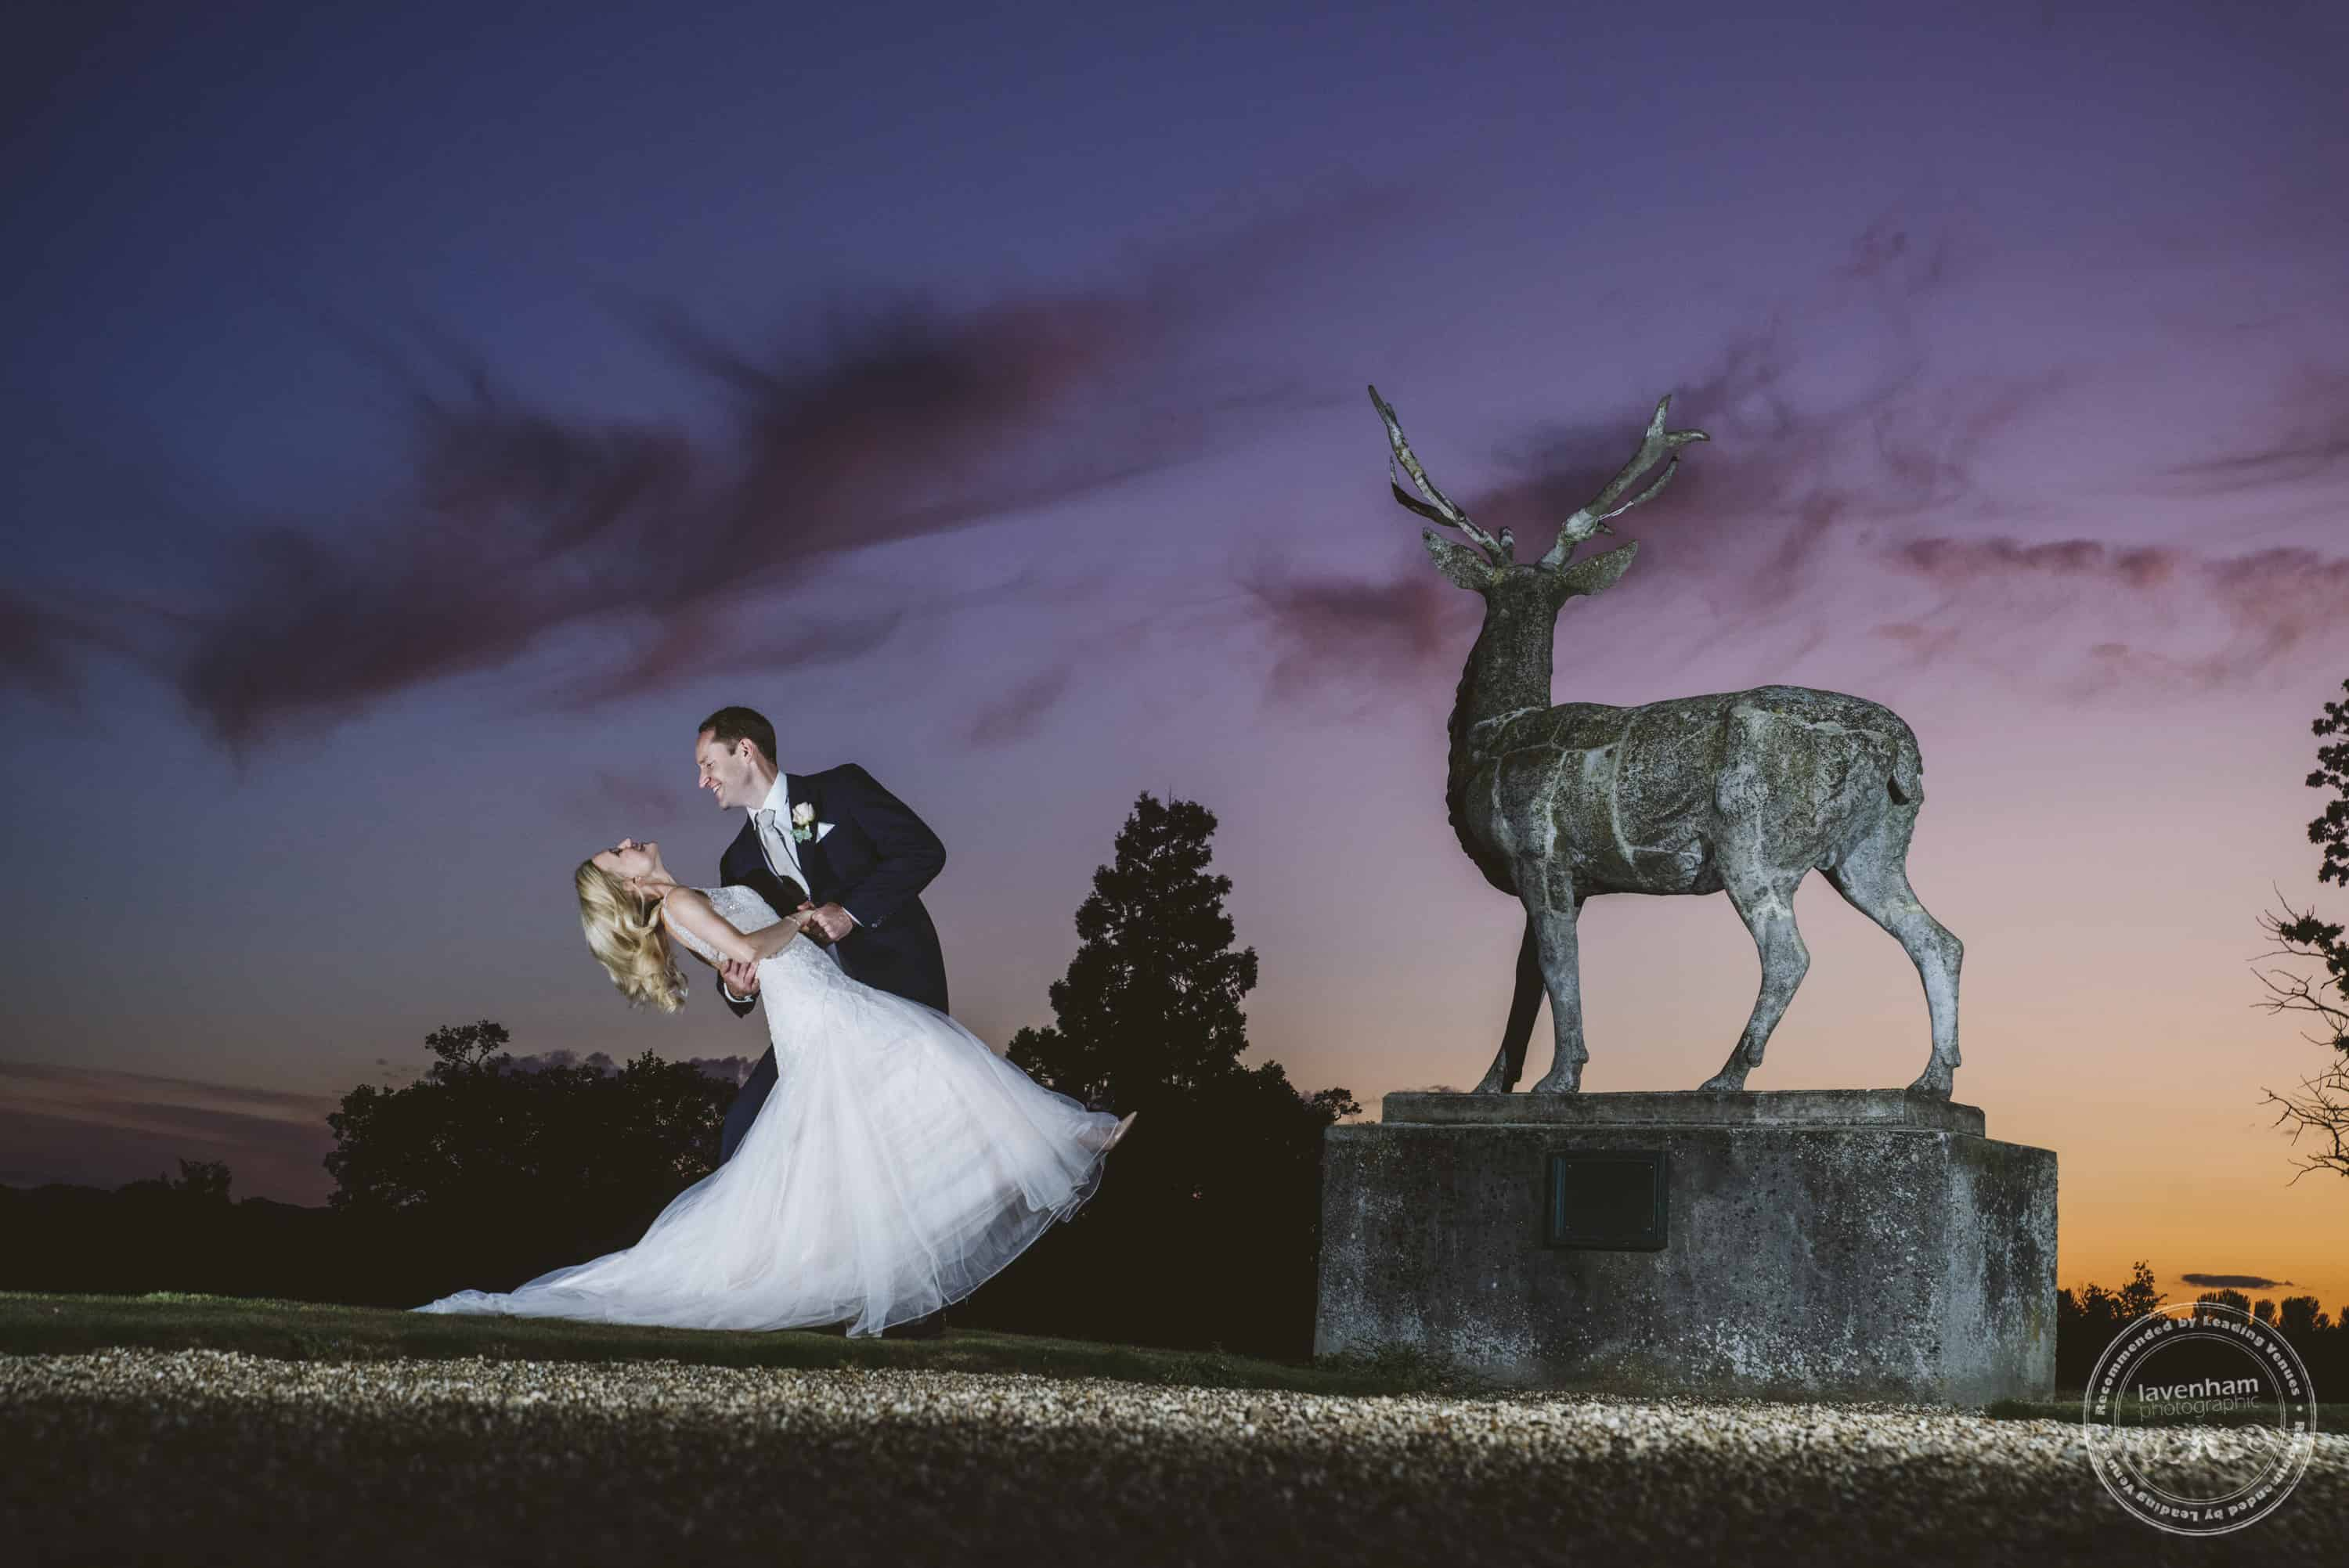 Gorgeous sunset at Gosfield Hall! Bride and groom strike a pose. Lit with off-camera lighting setup